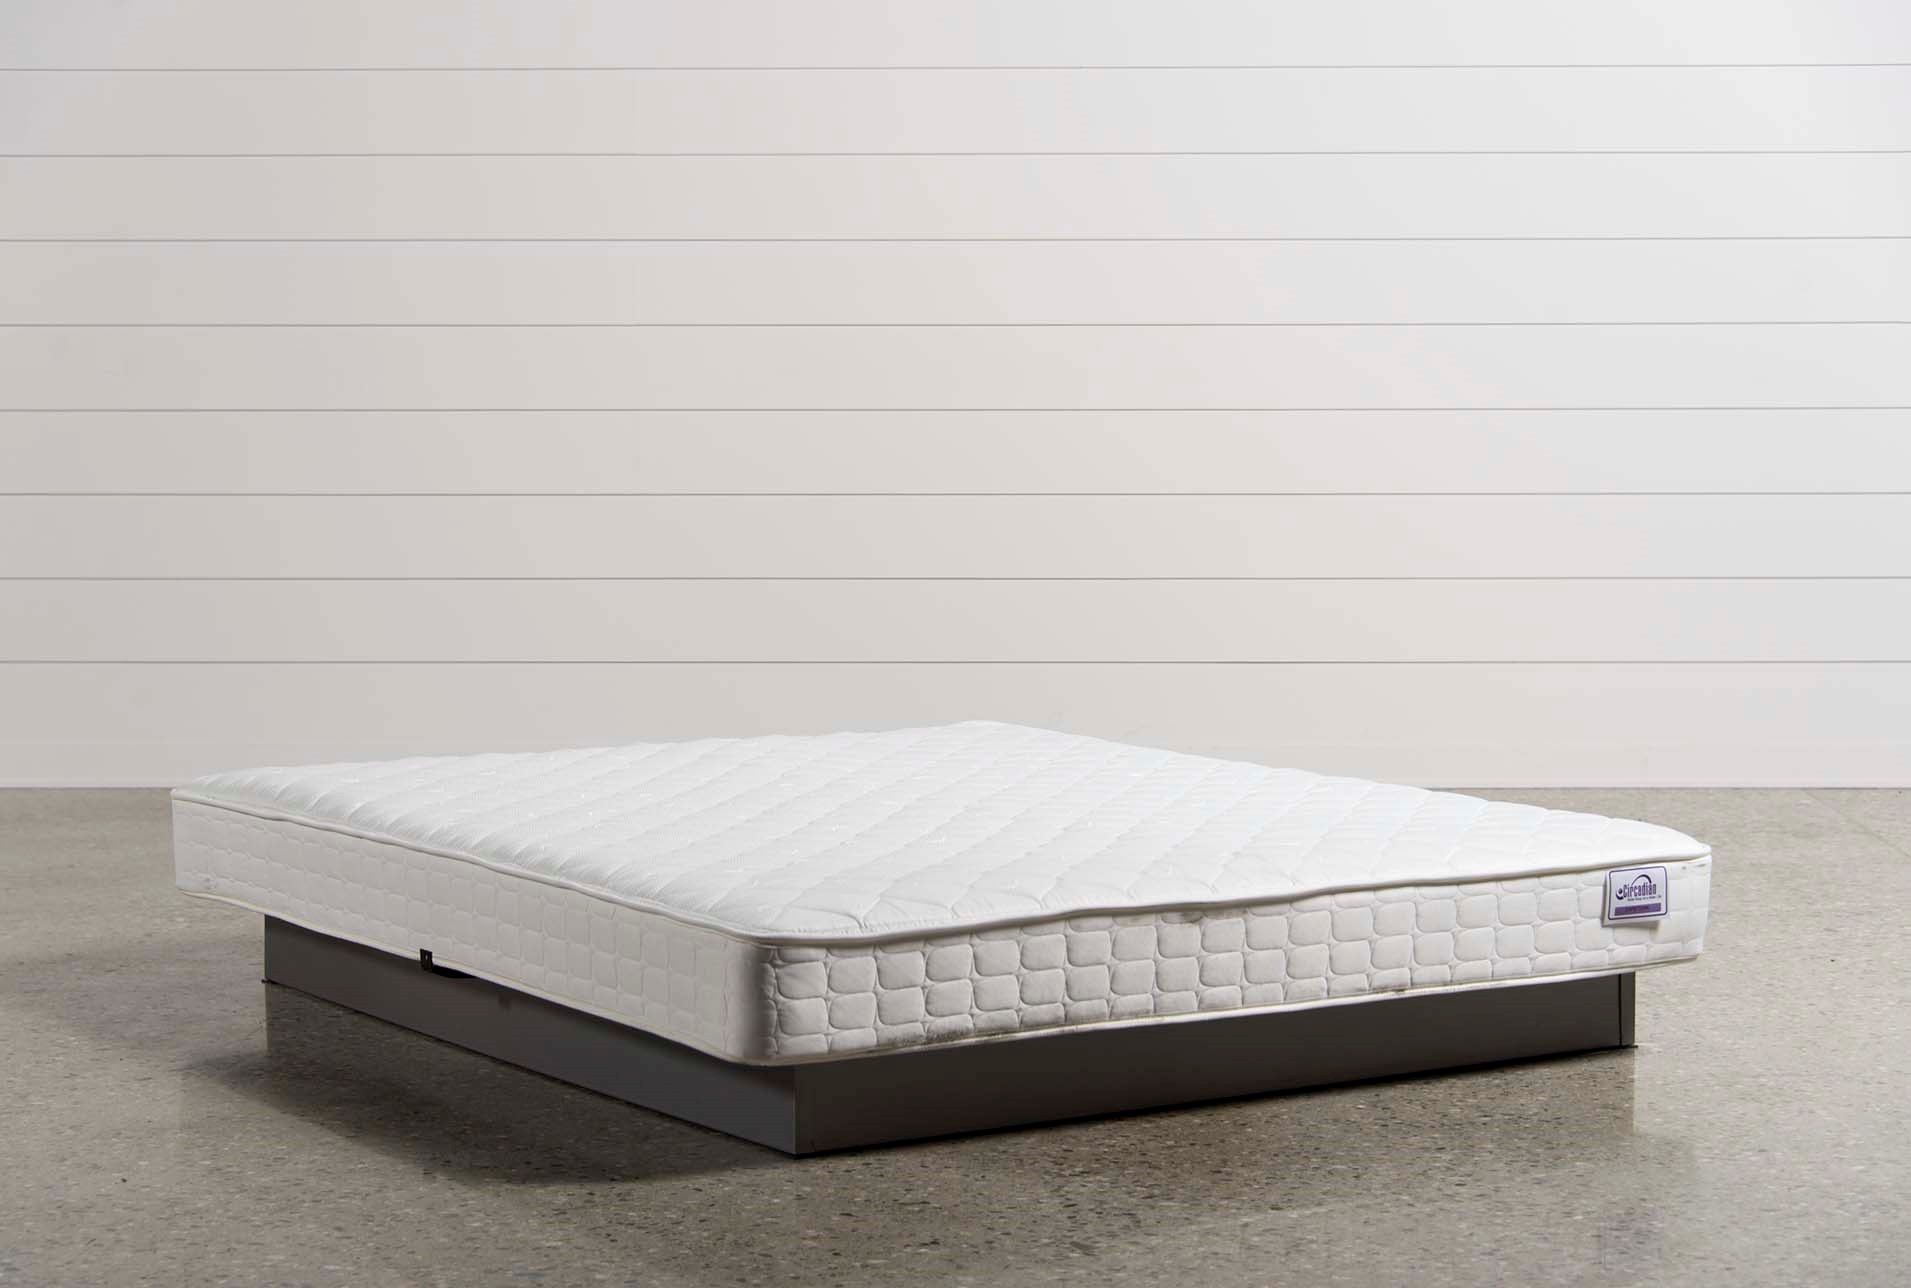 double cbs divan mattress beds or black base king and box drawers spring options single storage with cheap